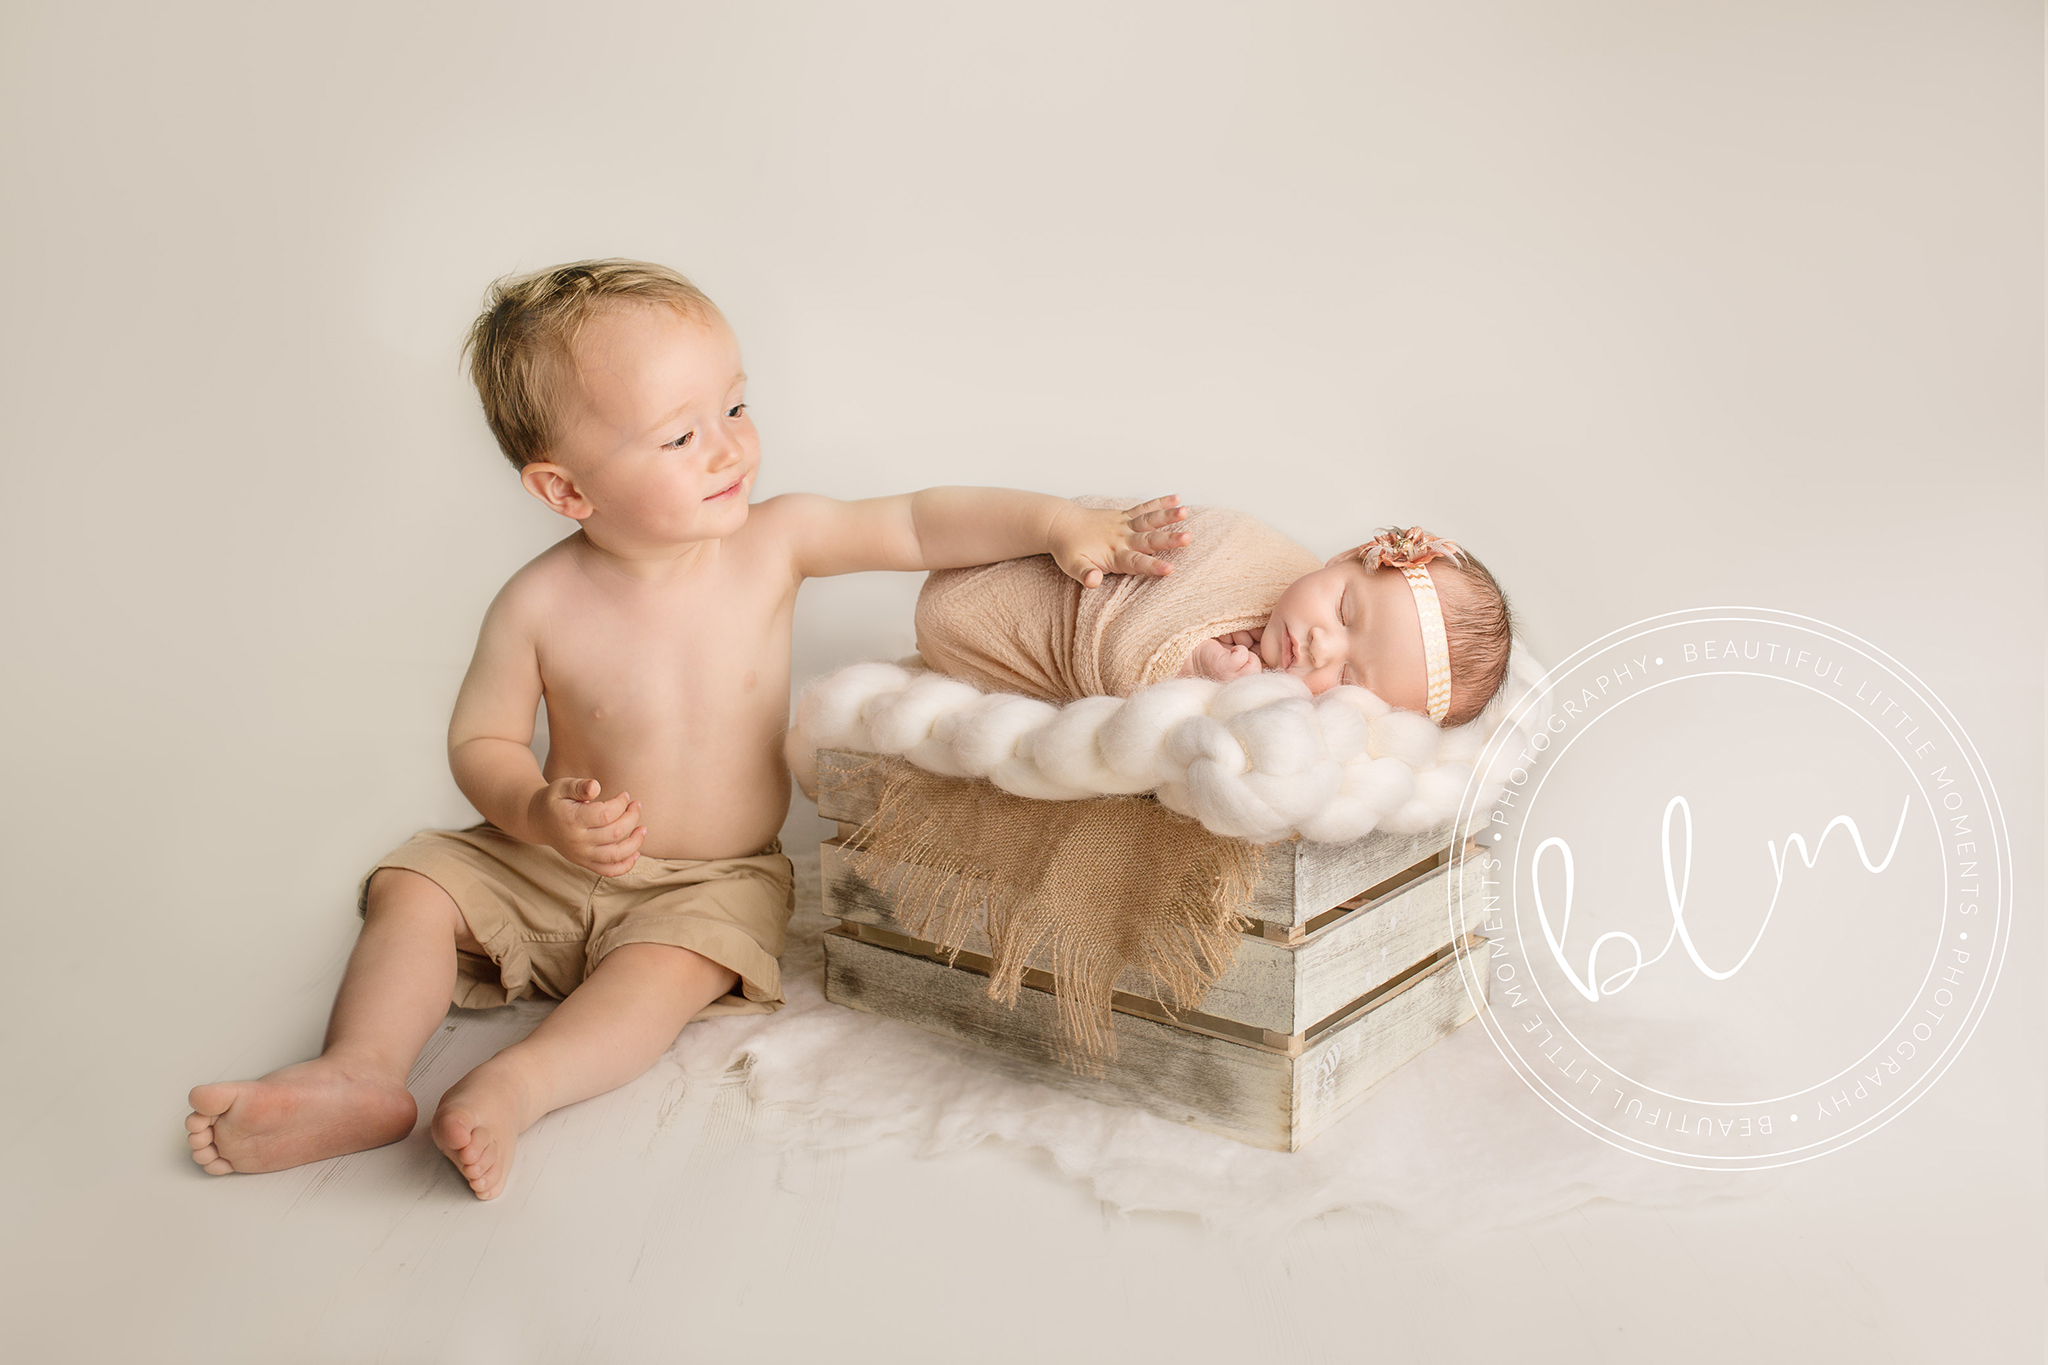 newborn-baby-photo-shoot-epsom-surrey-brother-natural